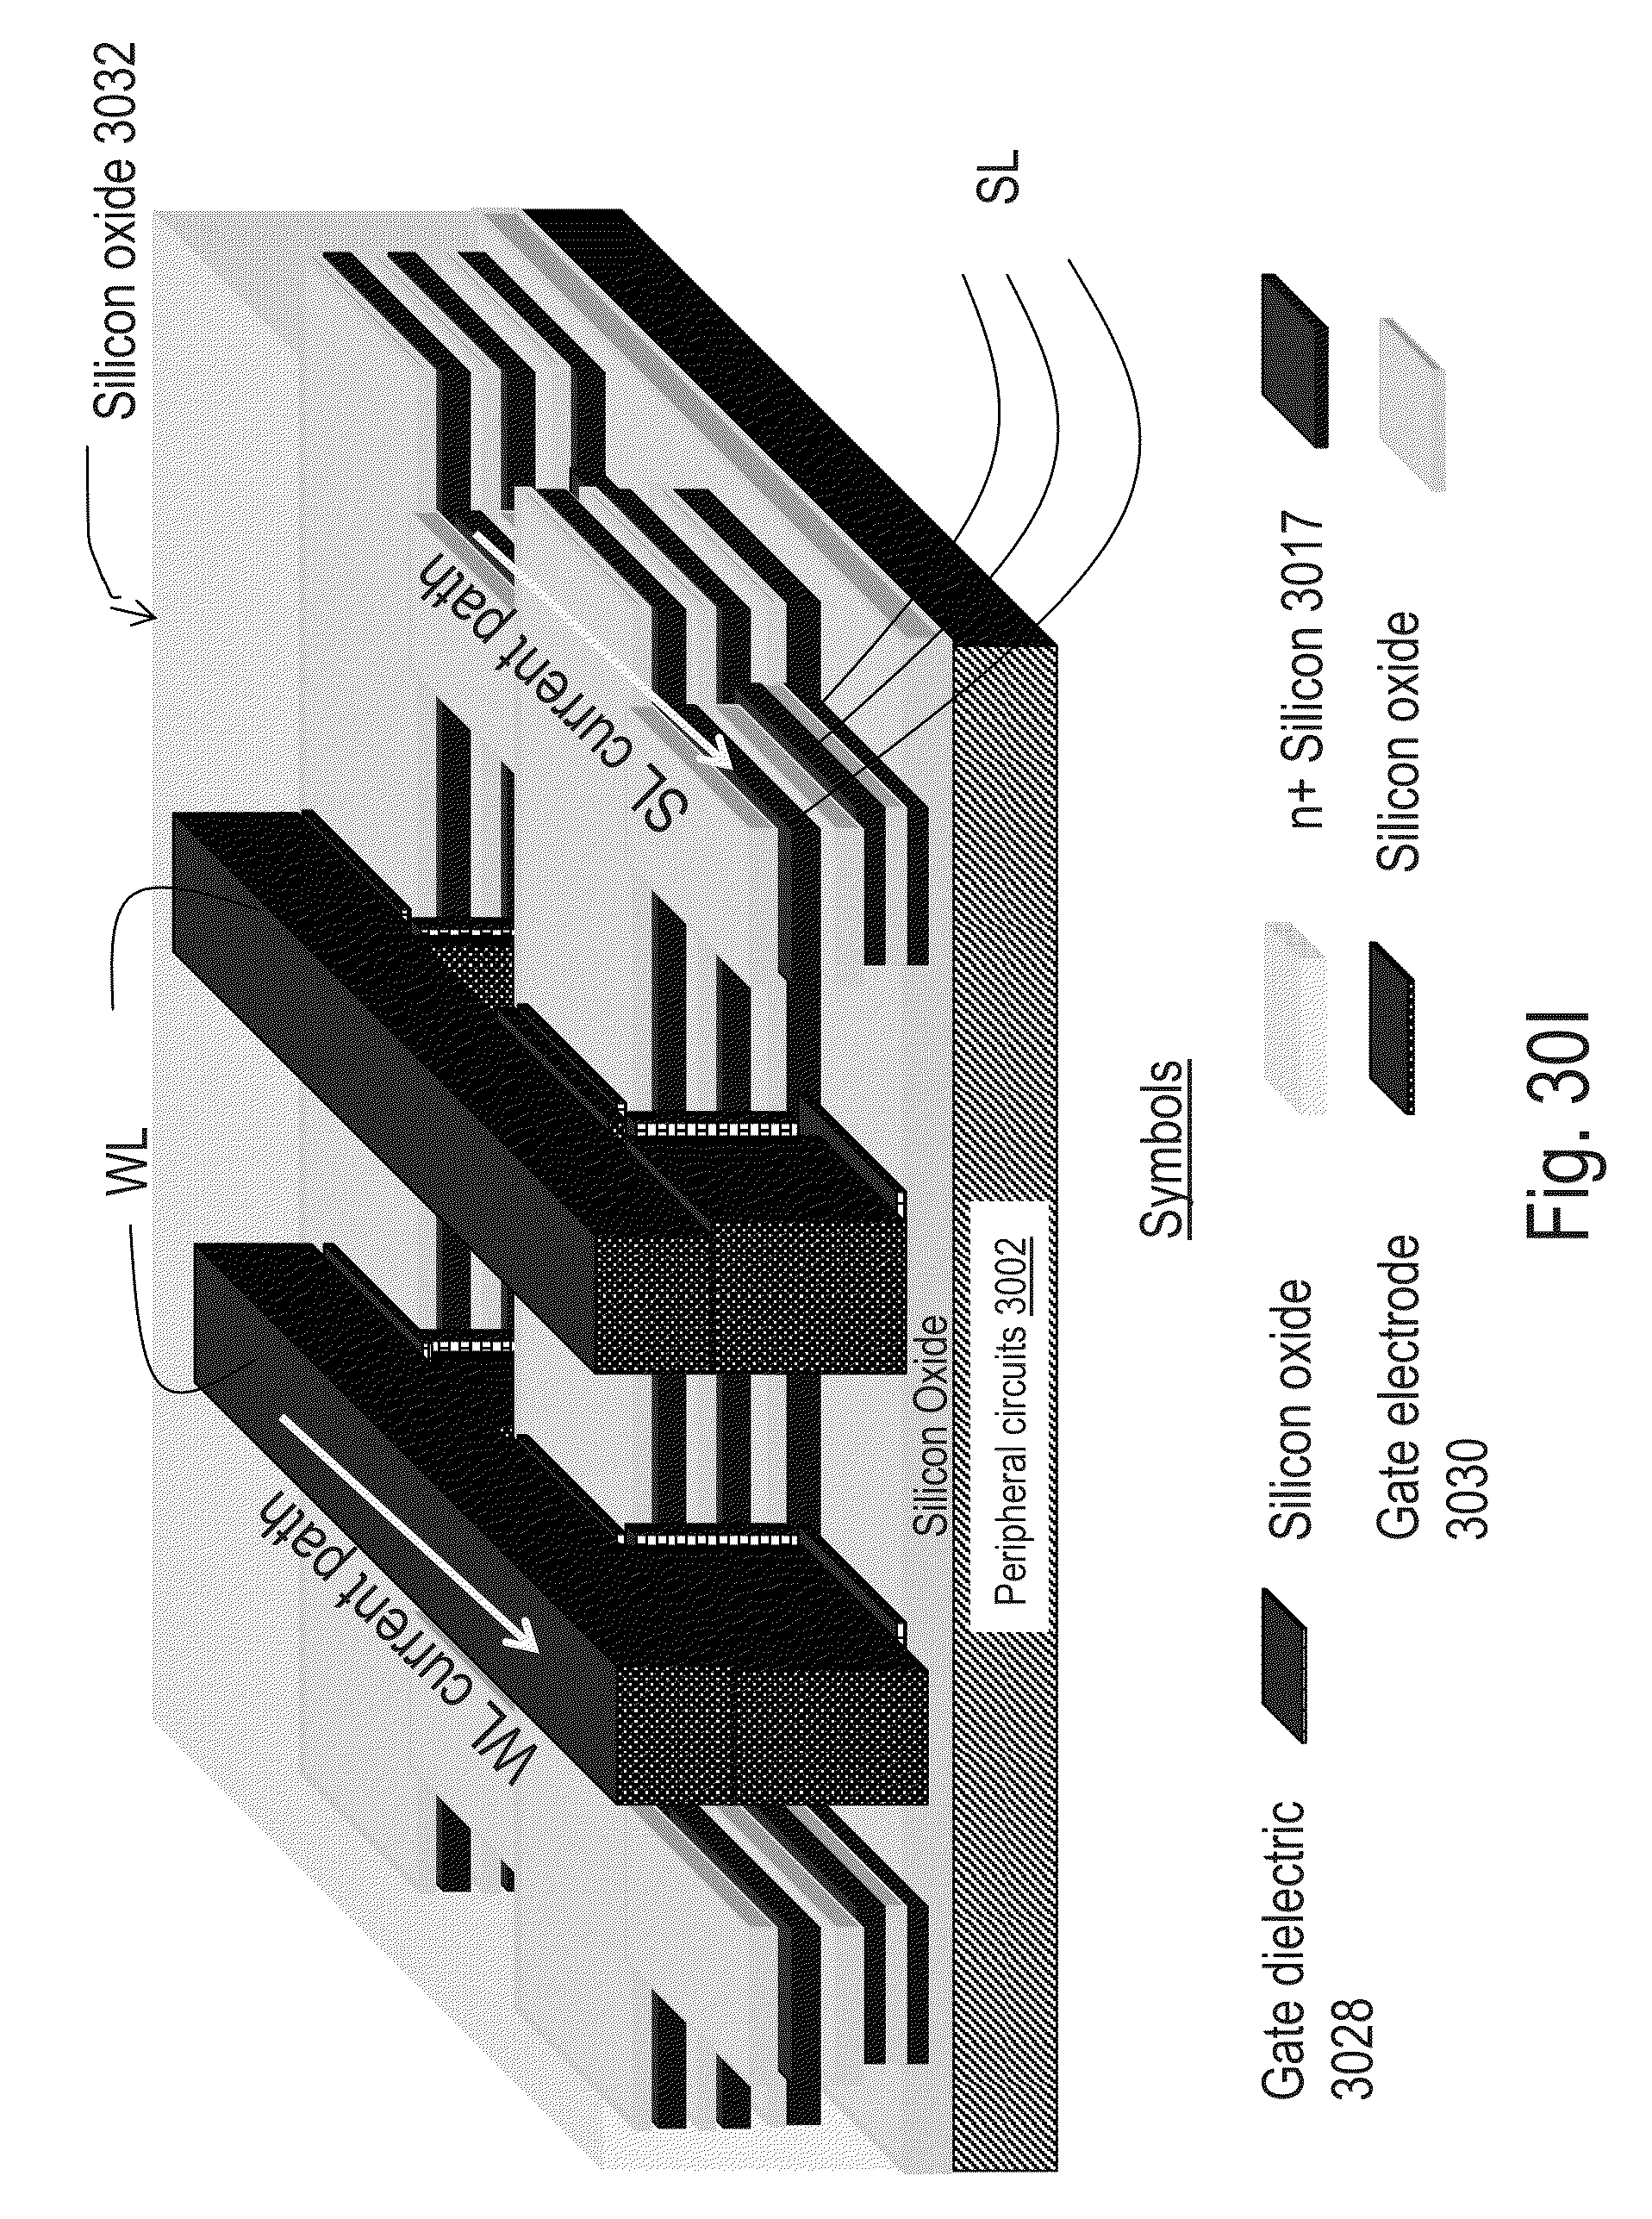 Patent Us 9219005 B2 Gate Tone Generator By Ic 4011 Electronic Projects Circuits Images